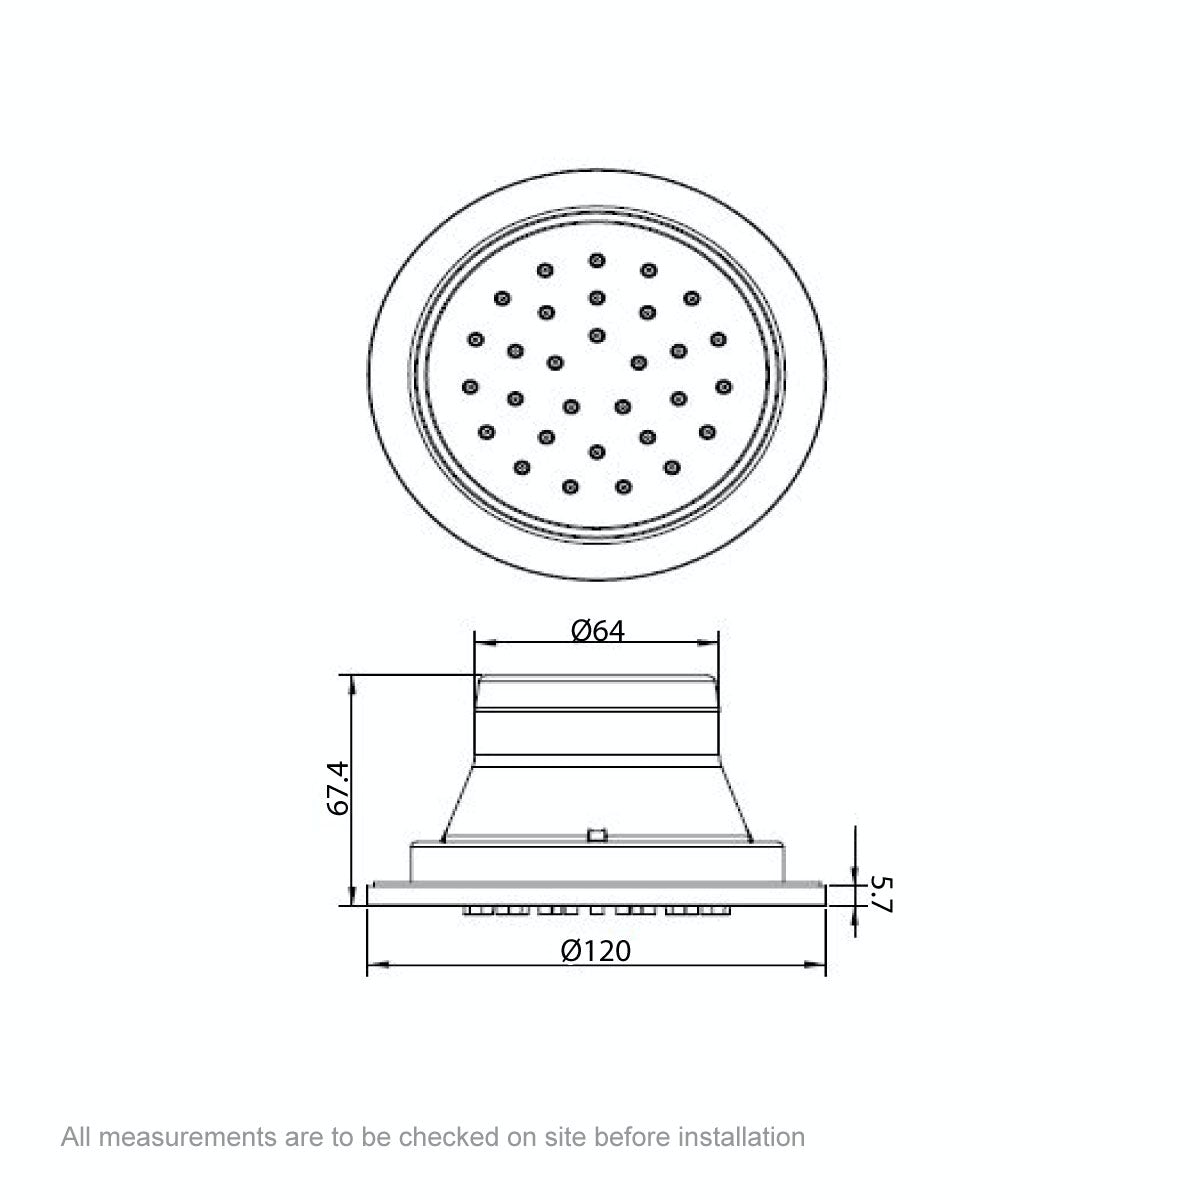 Dimensions for Mode Spa round shower body jet